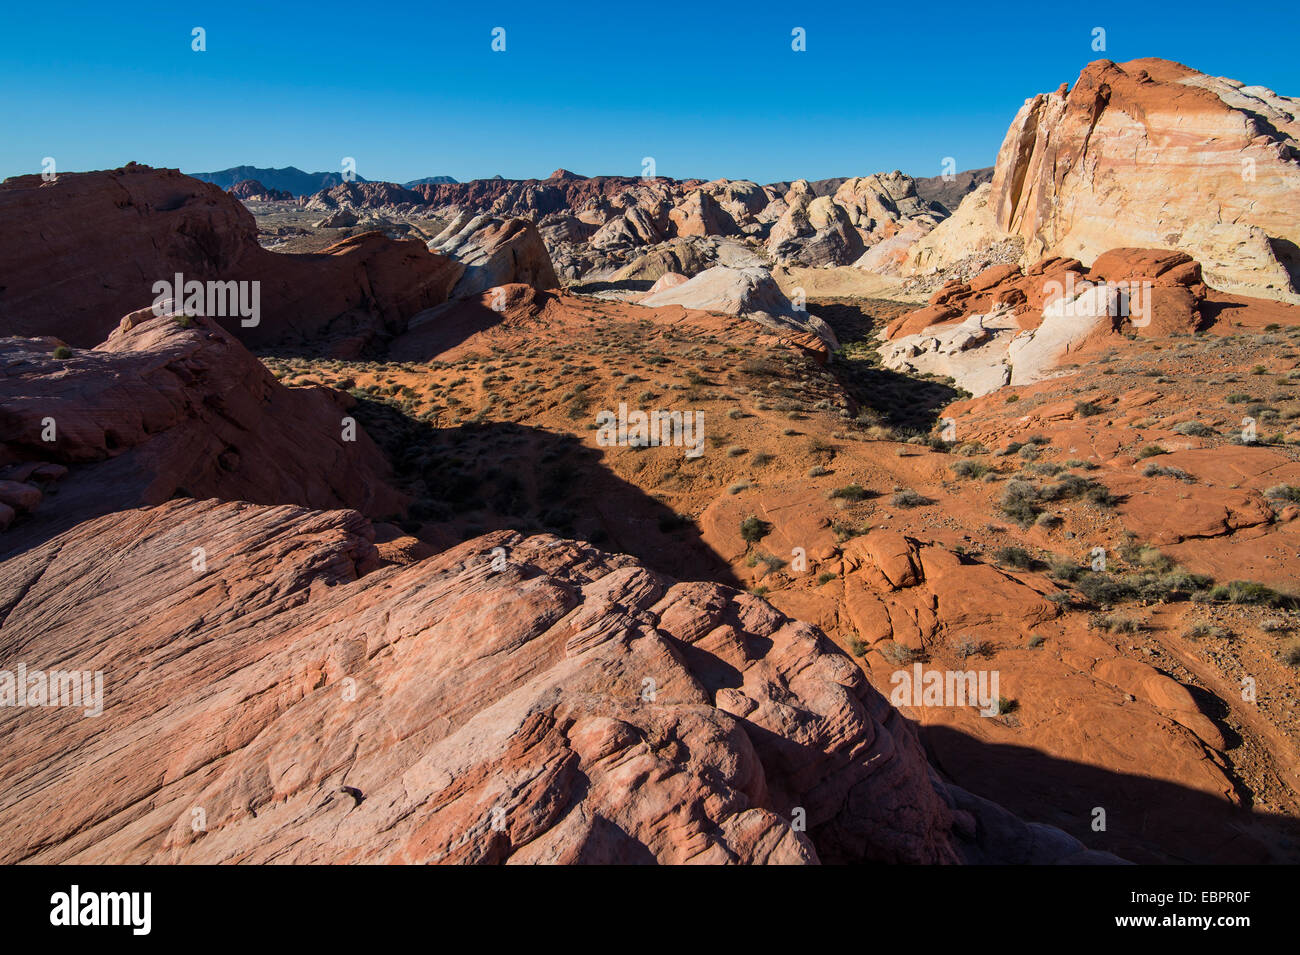 Redrock Sandstone formations at sunrise in the Valley of Fire State Park, Nevada, United States of America, North - Stock Image